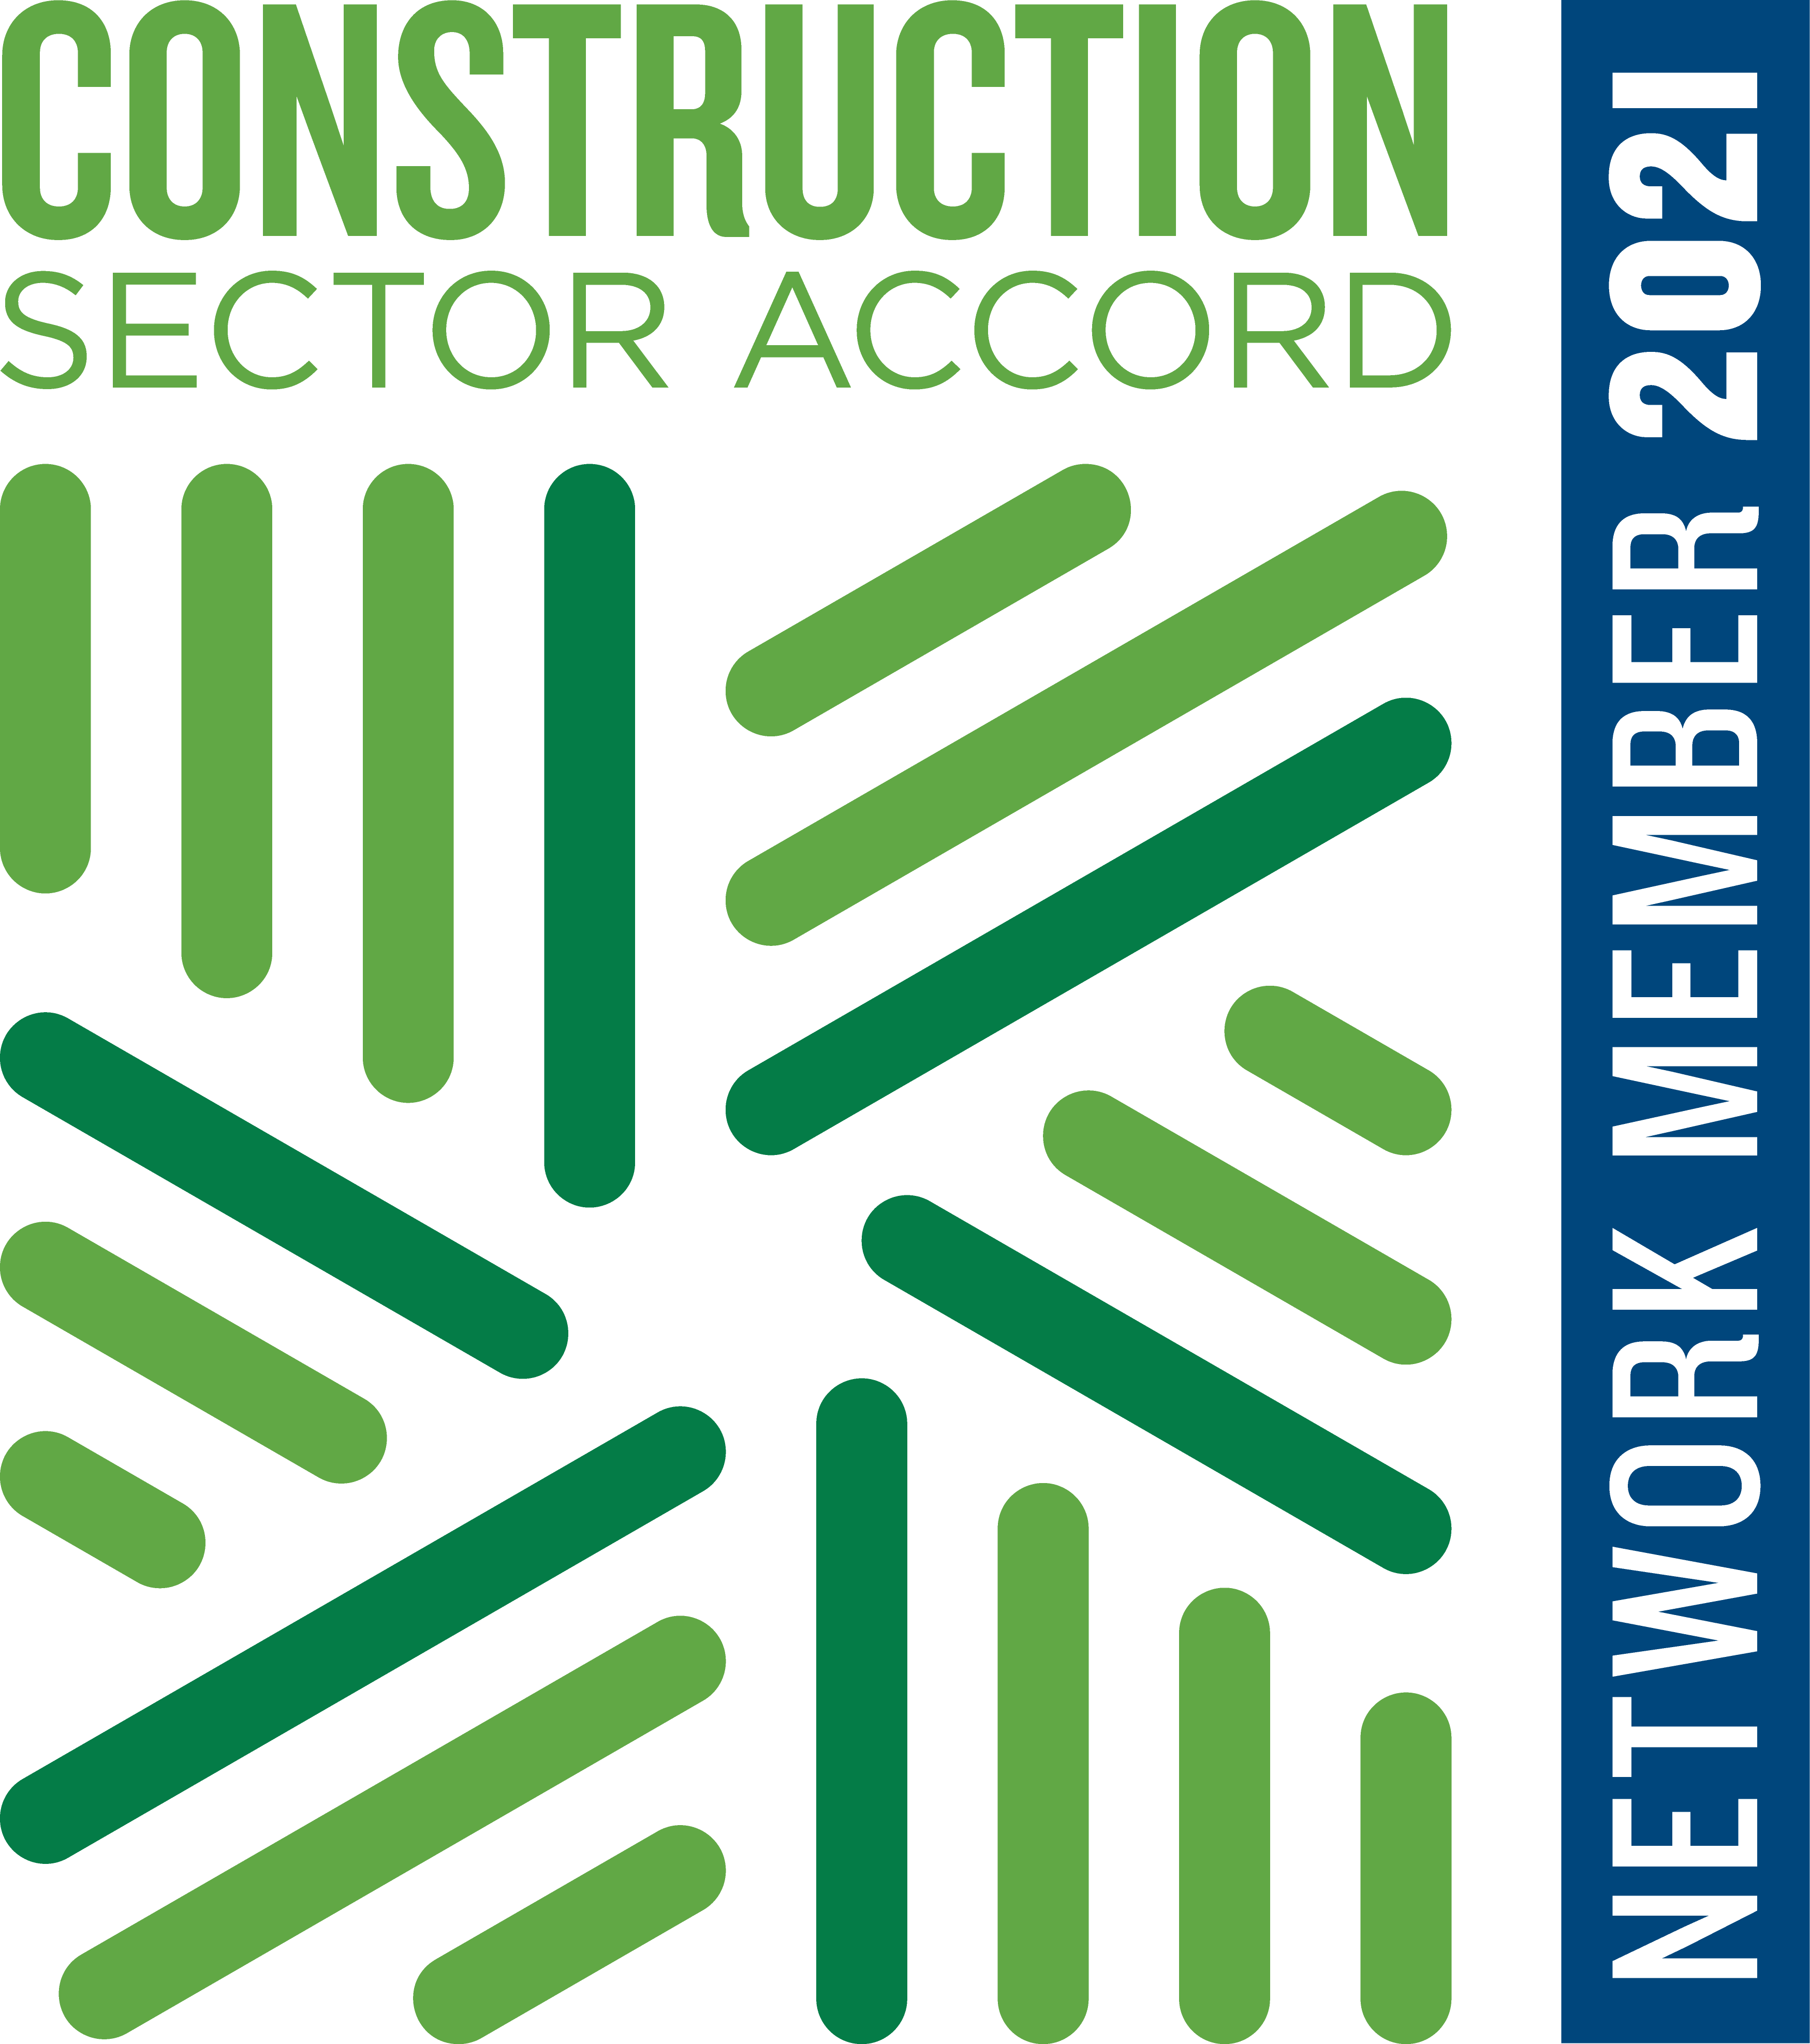 Construction Sector Accord